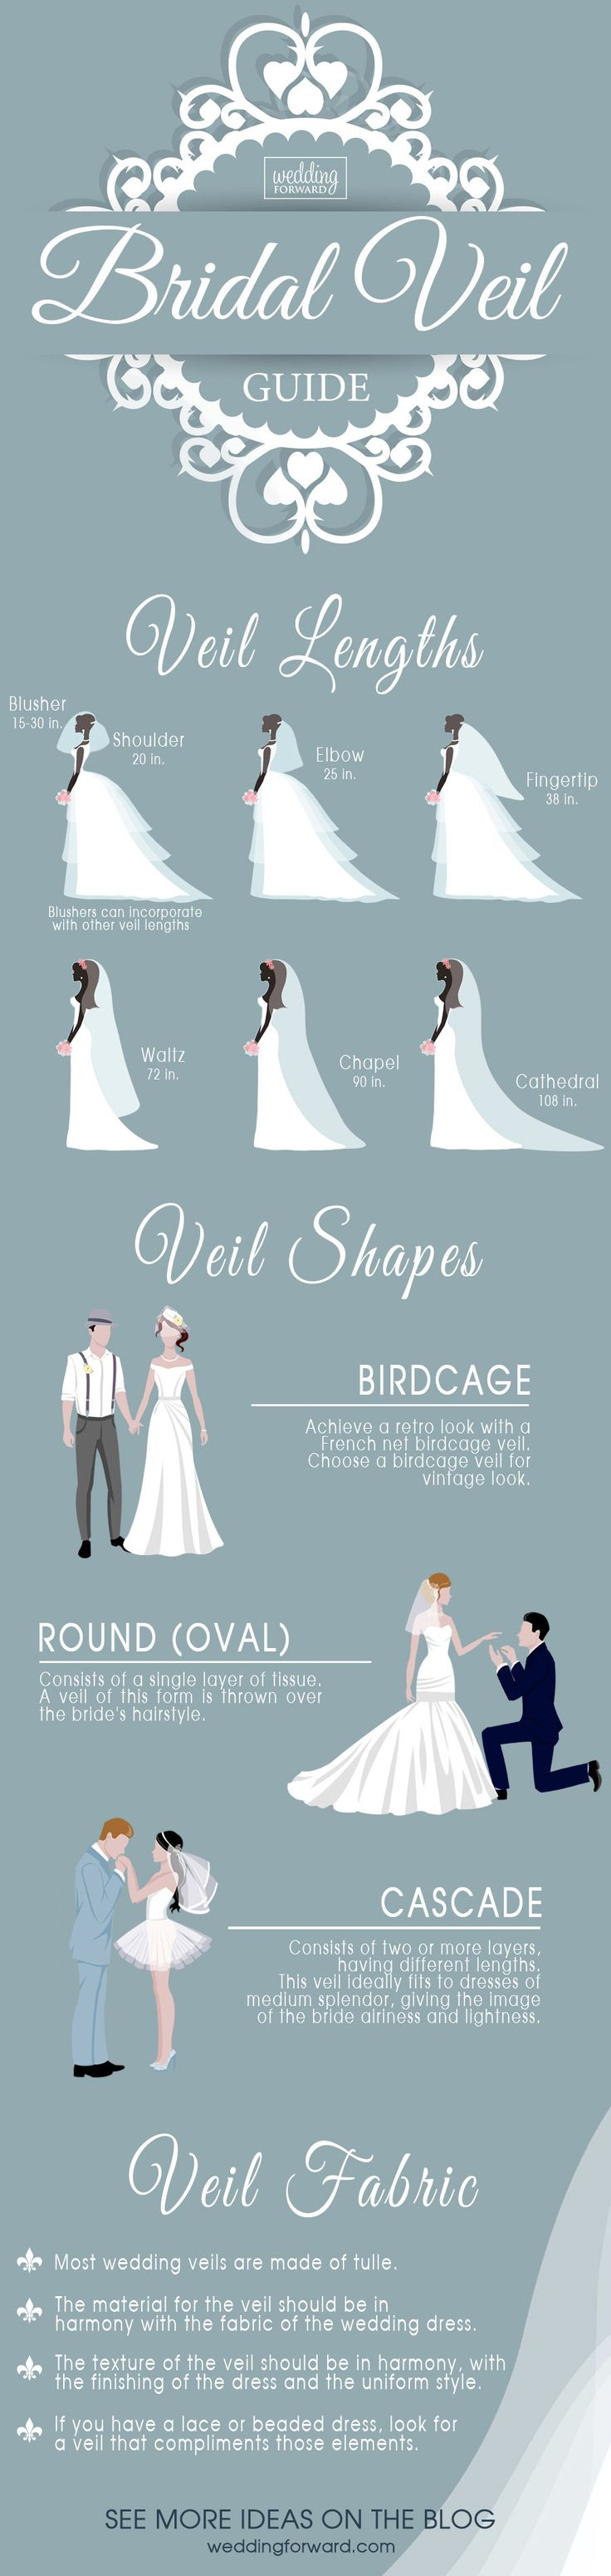 best bridal need to know images on pinterest